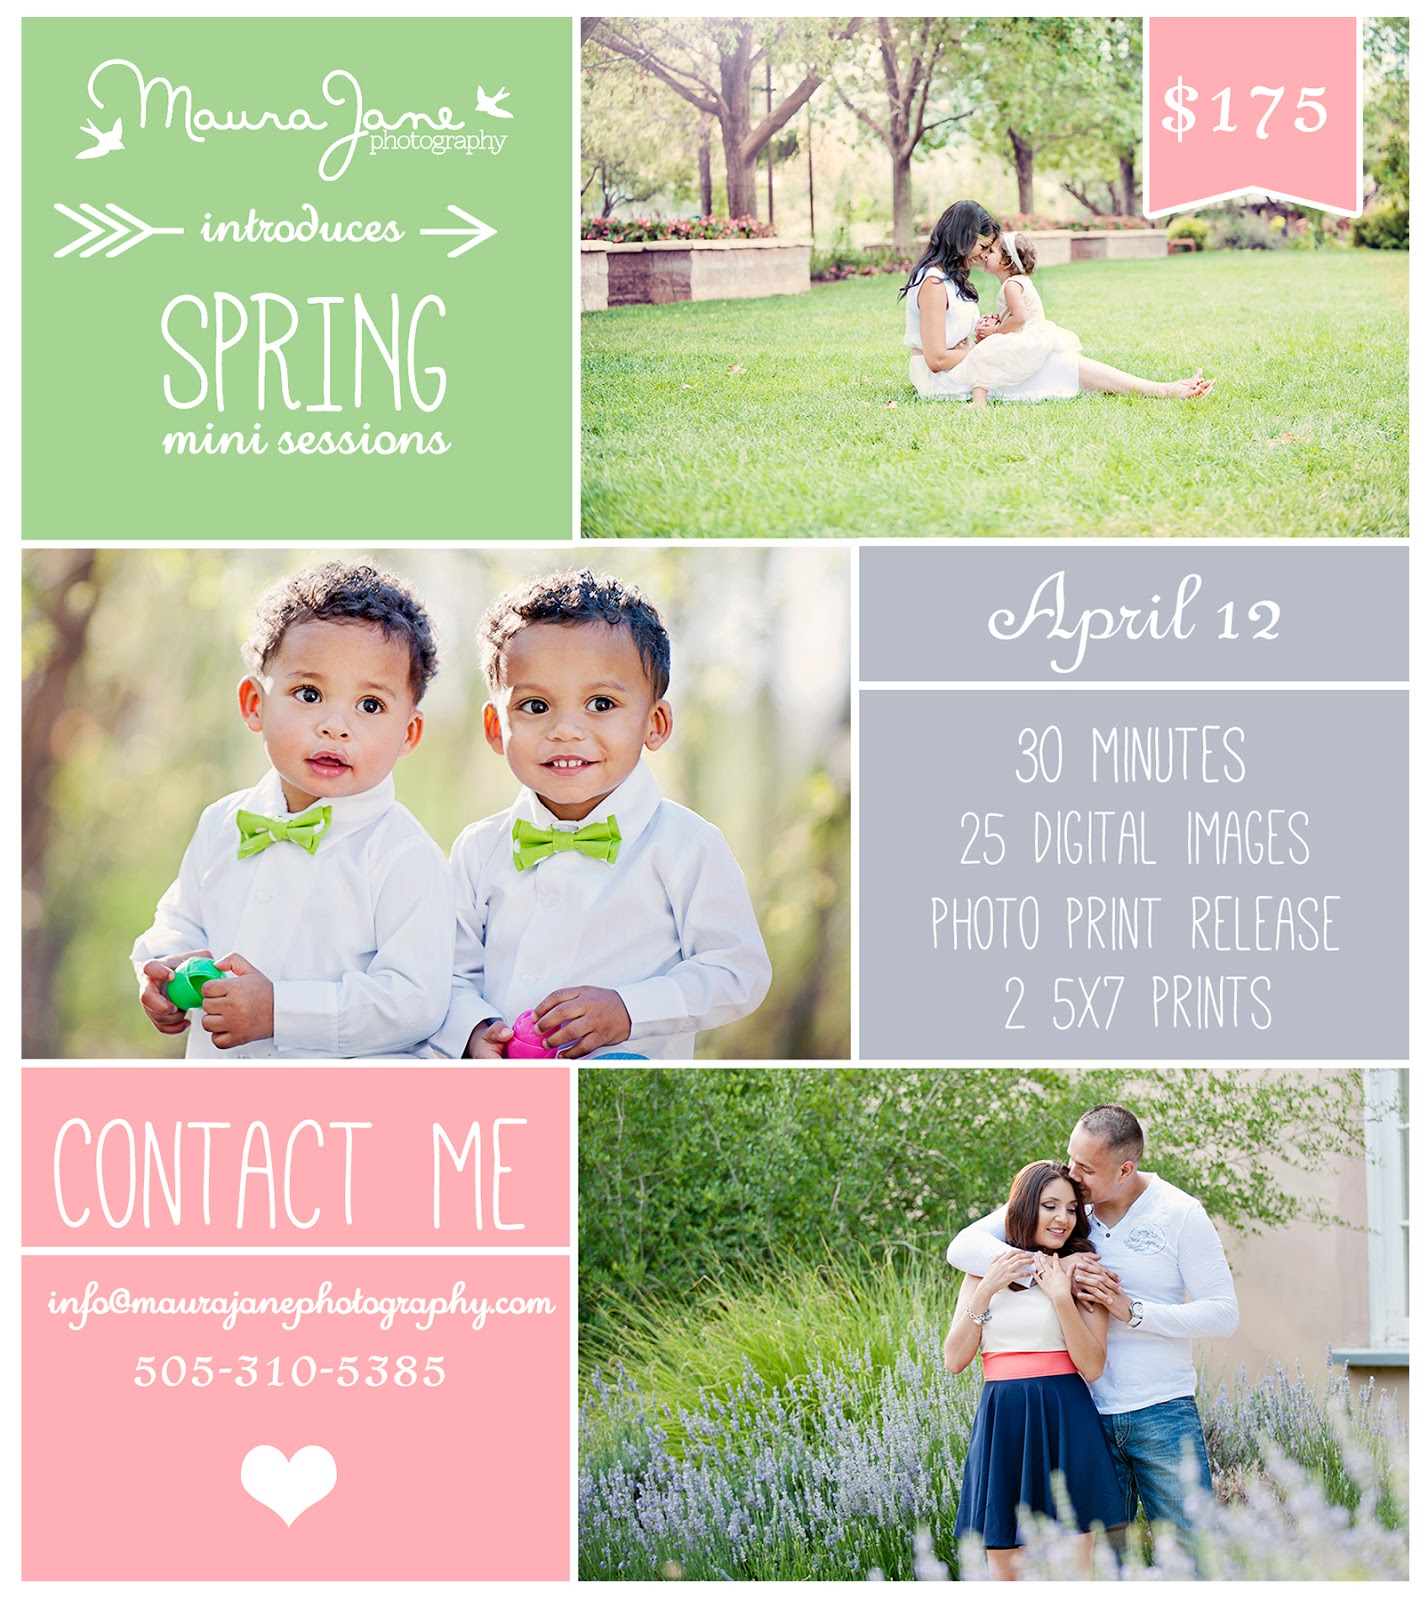 spring photos, family photographers in albuquerque, spring mini sessions in albuquerque, children photographers in albuquerque, couple photography, spring photography deals, outdoor photography session, spring photoshoot, family photographer in albuquerque